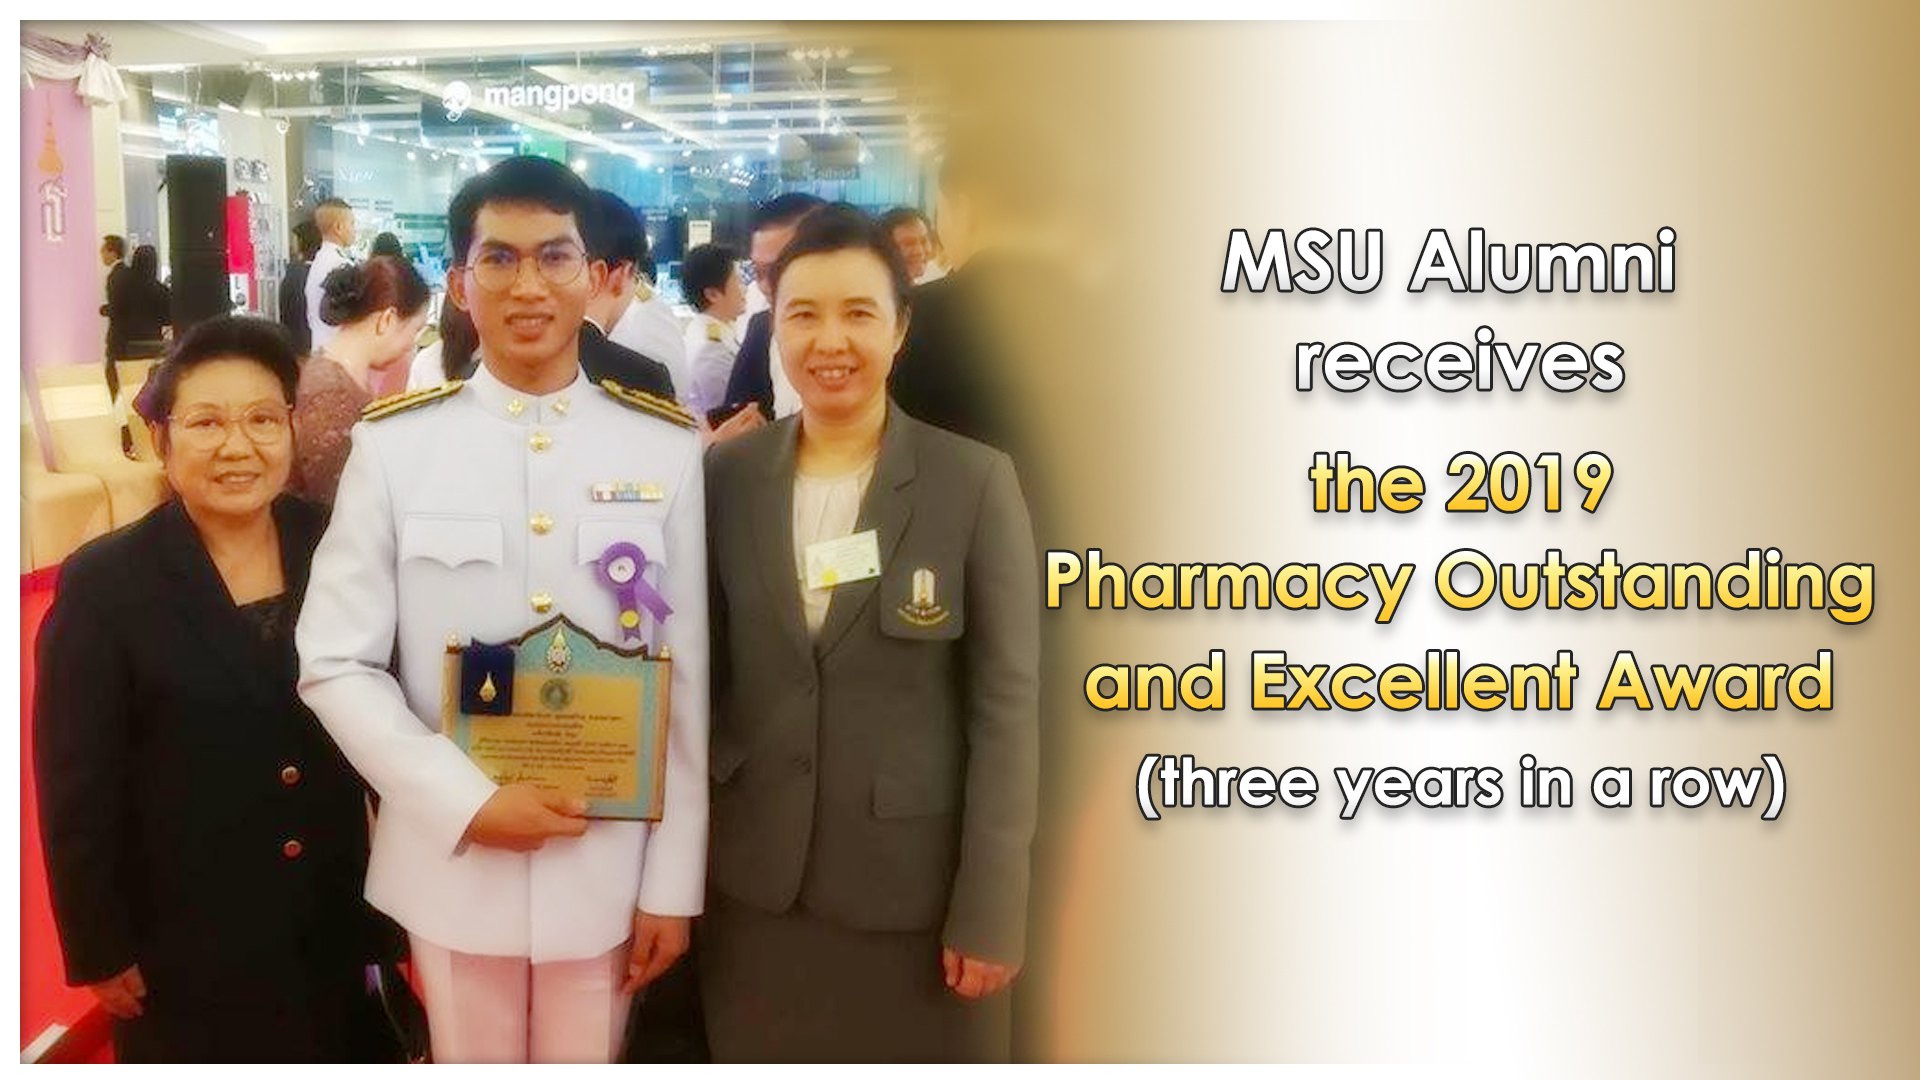 MSU Alumni receives the 2019 Pharmacy Outstanding and Excellent Award (three years in a row)